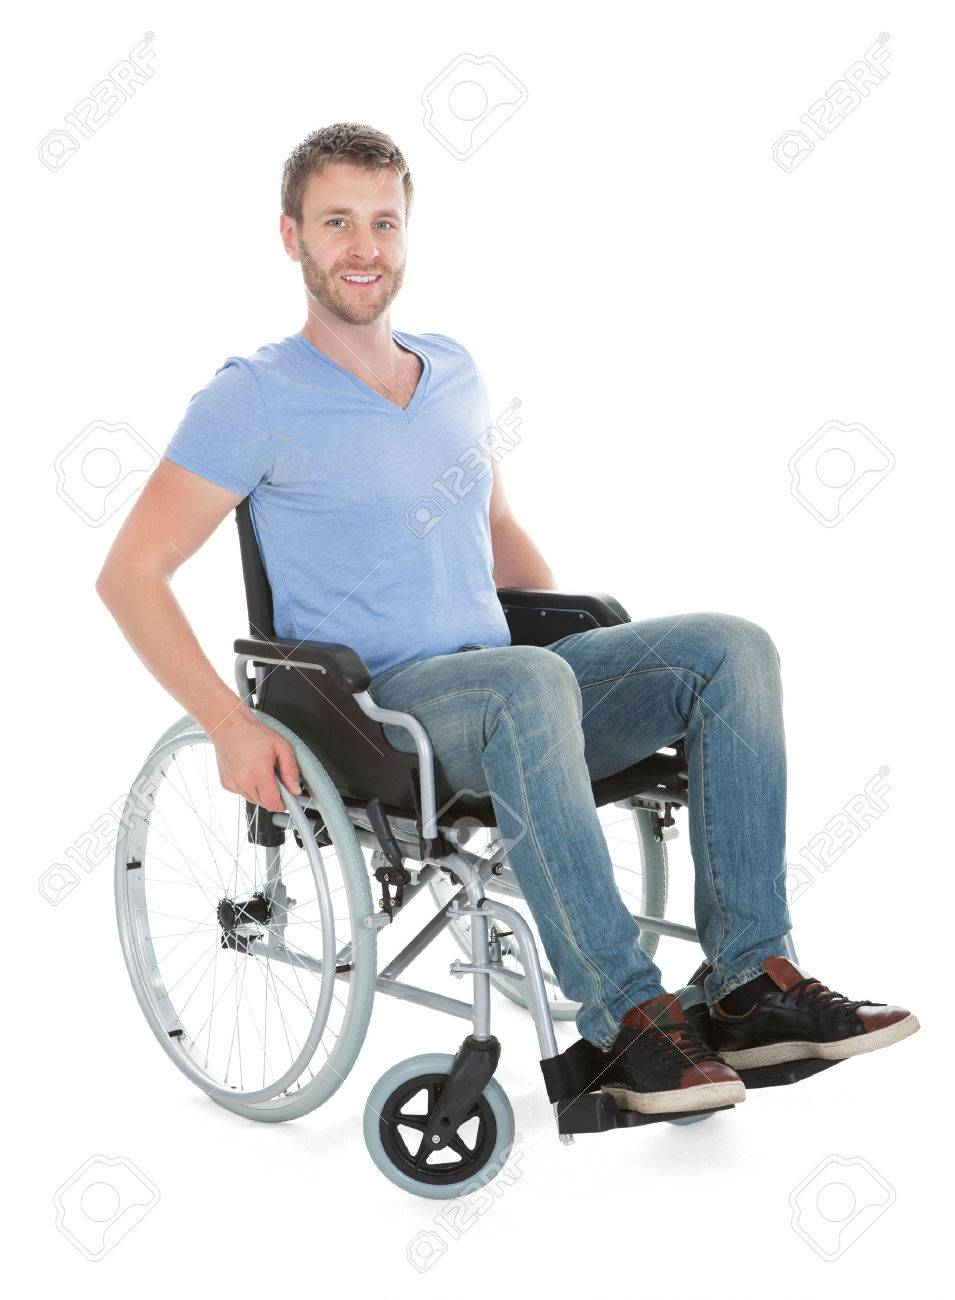 wheelchair man northwest territory chairs full length portrait of disabled on over white background stock photo 30581225